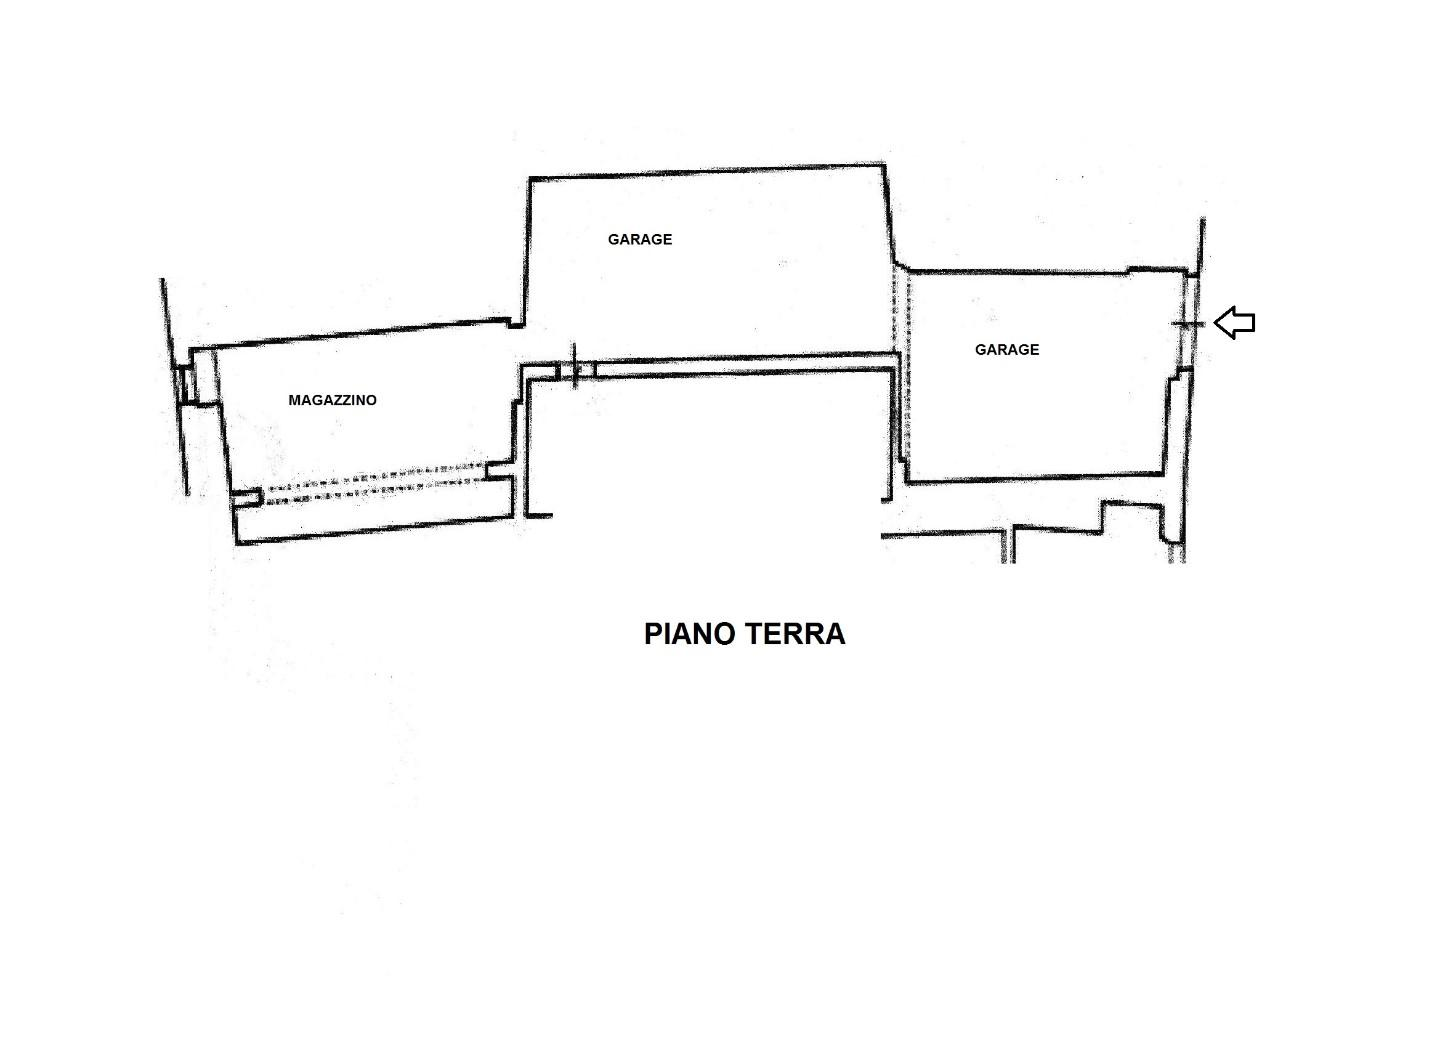 Garage for sale in Montalcino (SI)